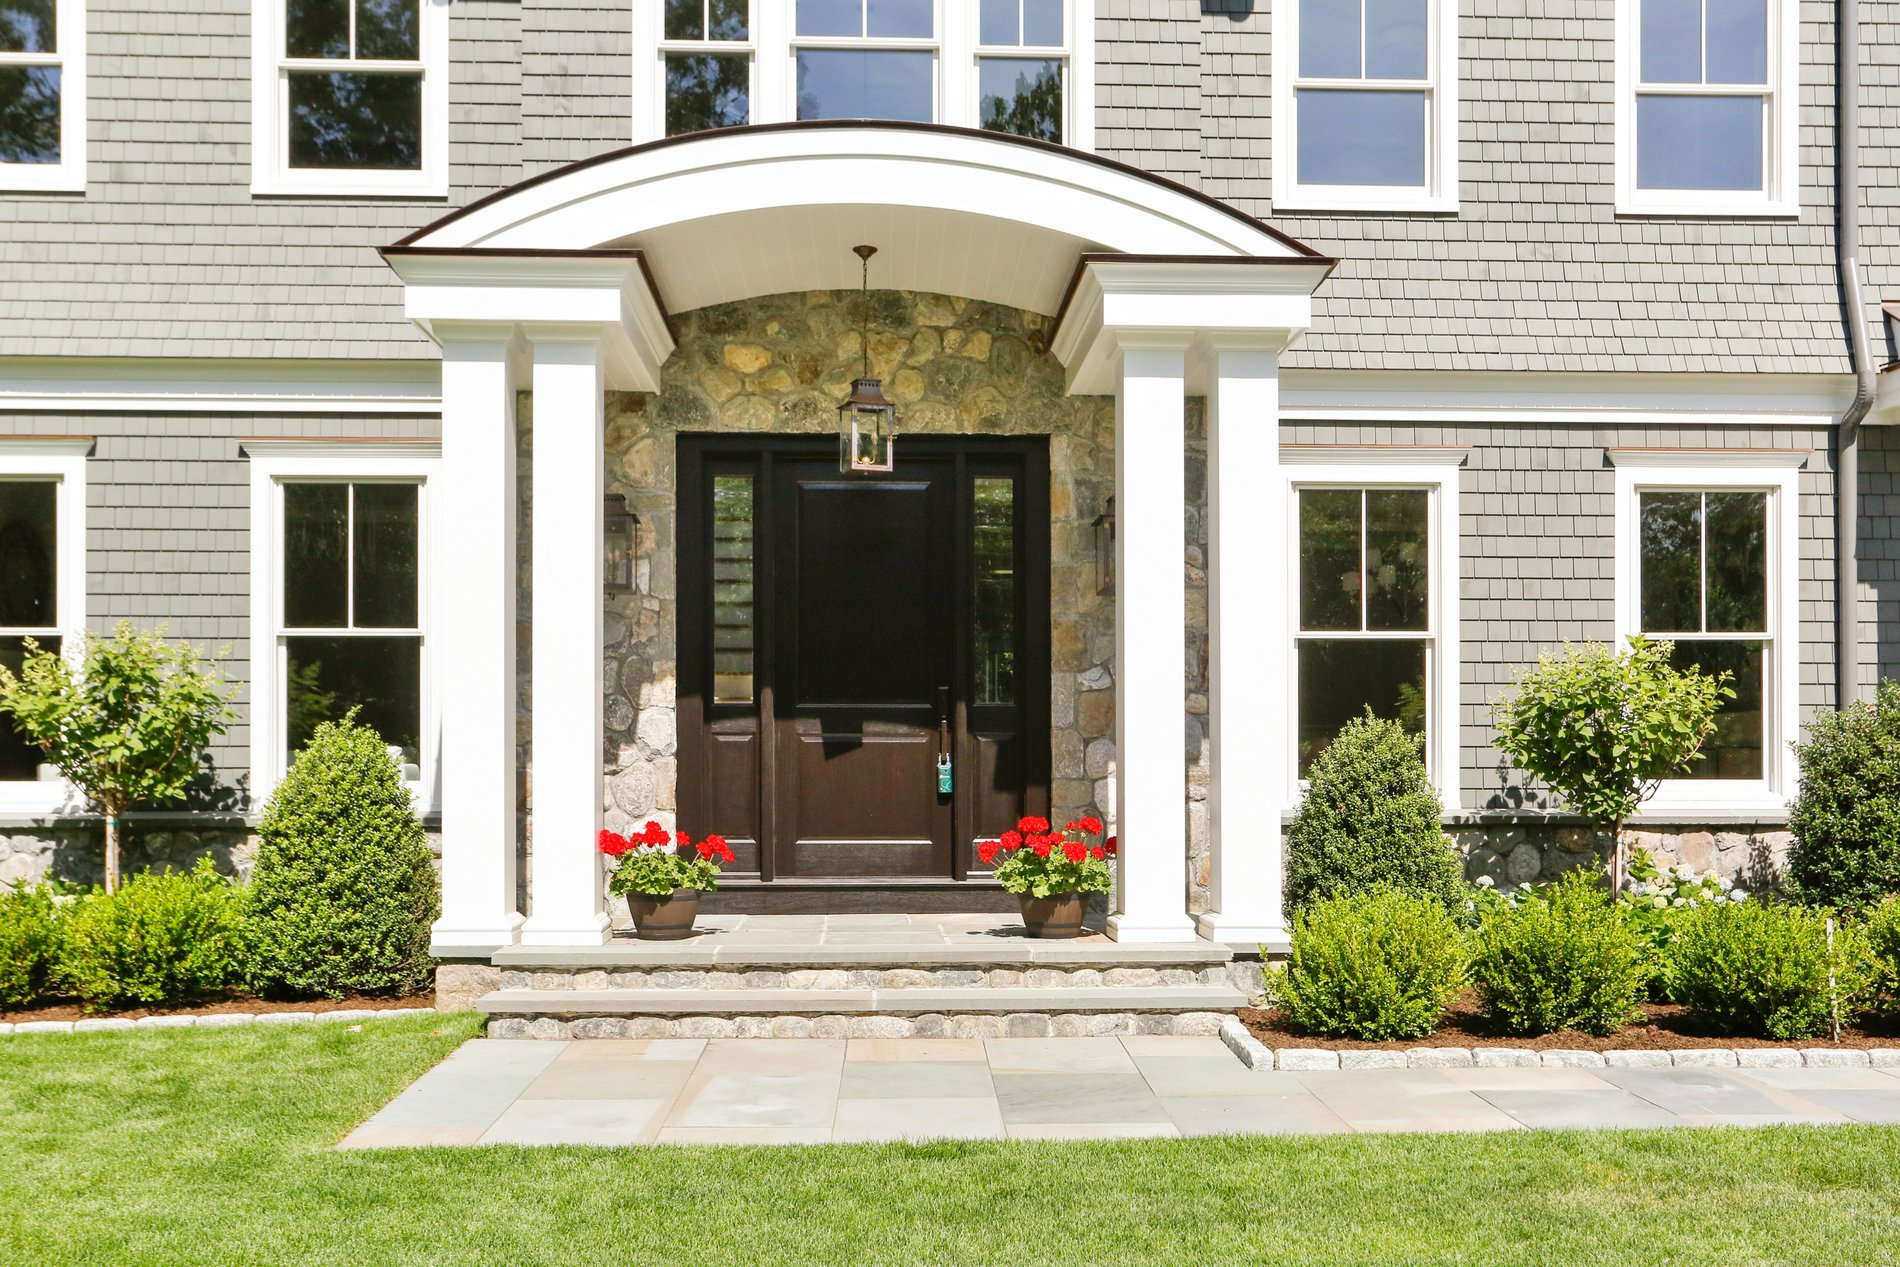 Beautiful arched portico with four square columns and a curved roof.